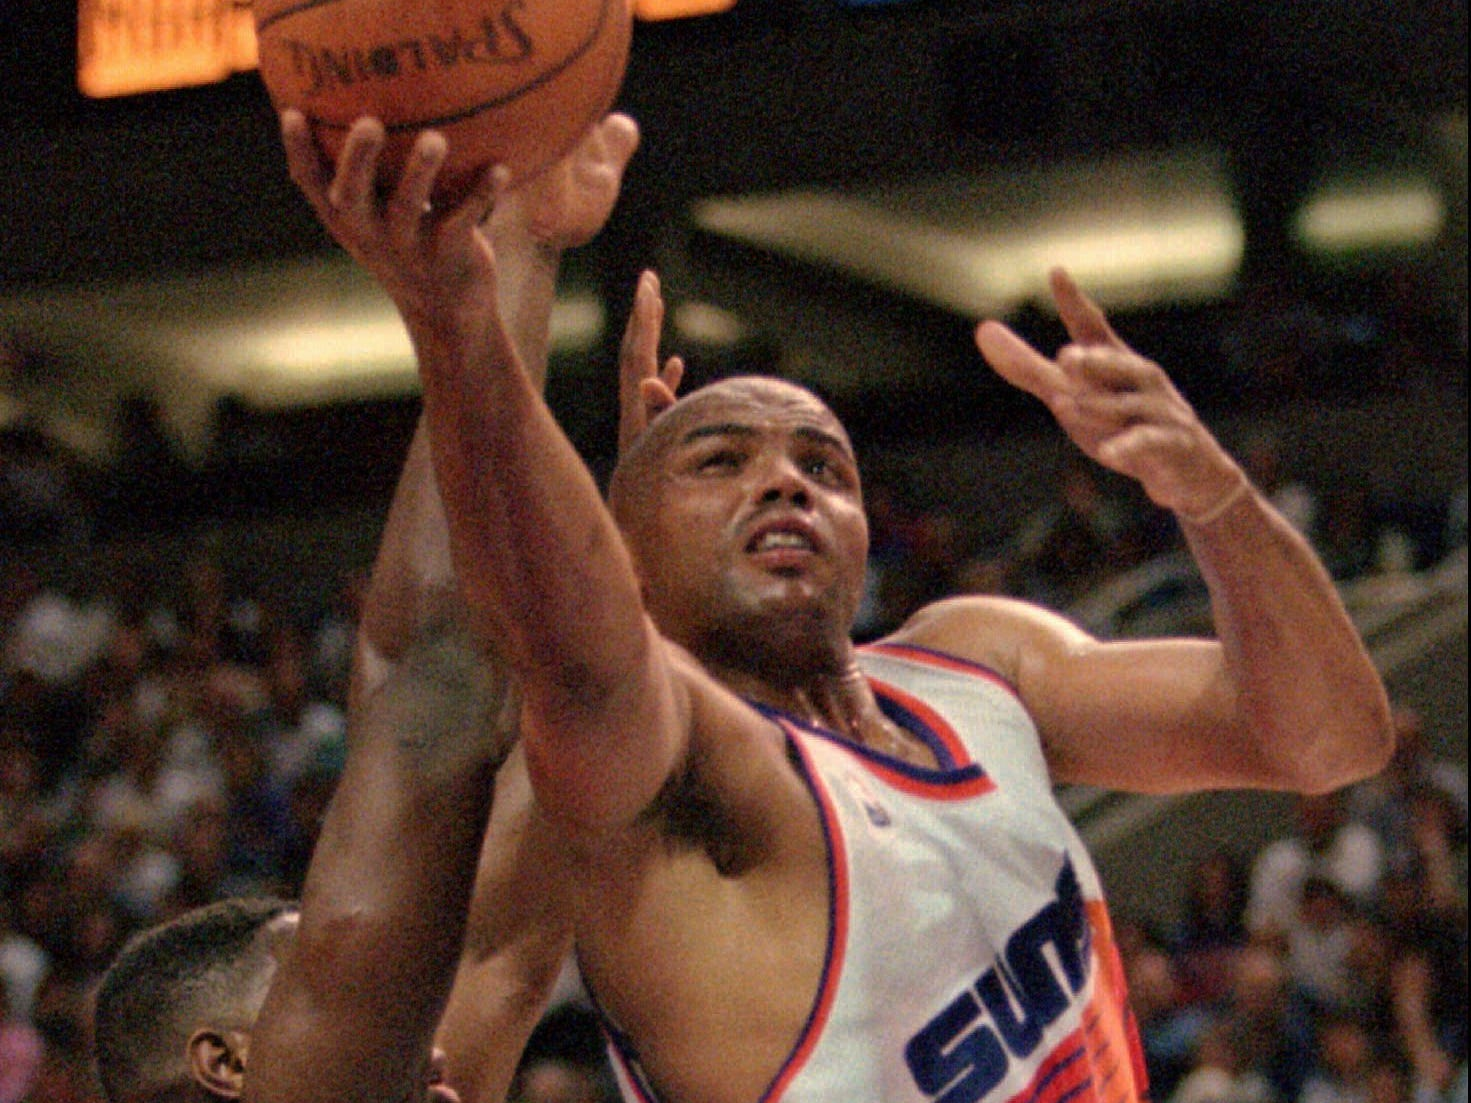 1995-96 | Suns MVP: Charles Barkley. This was Barkley's last season in town. It was the last 20-point season of his career. The aging All Star went off for 30 points and 20 rebounds in a playoff loss to the Spurs that signaled the end for the future Hall of Famer.